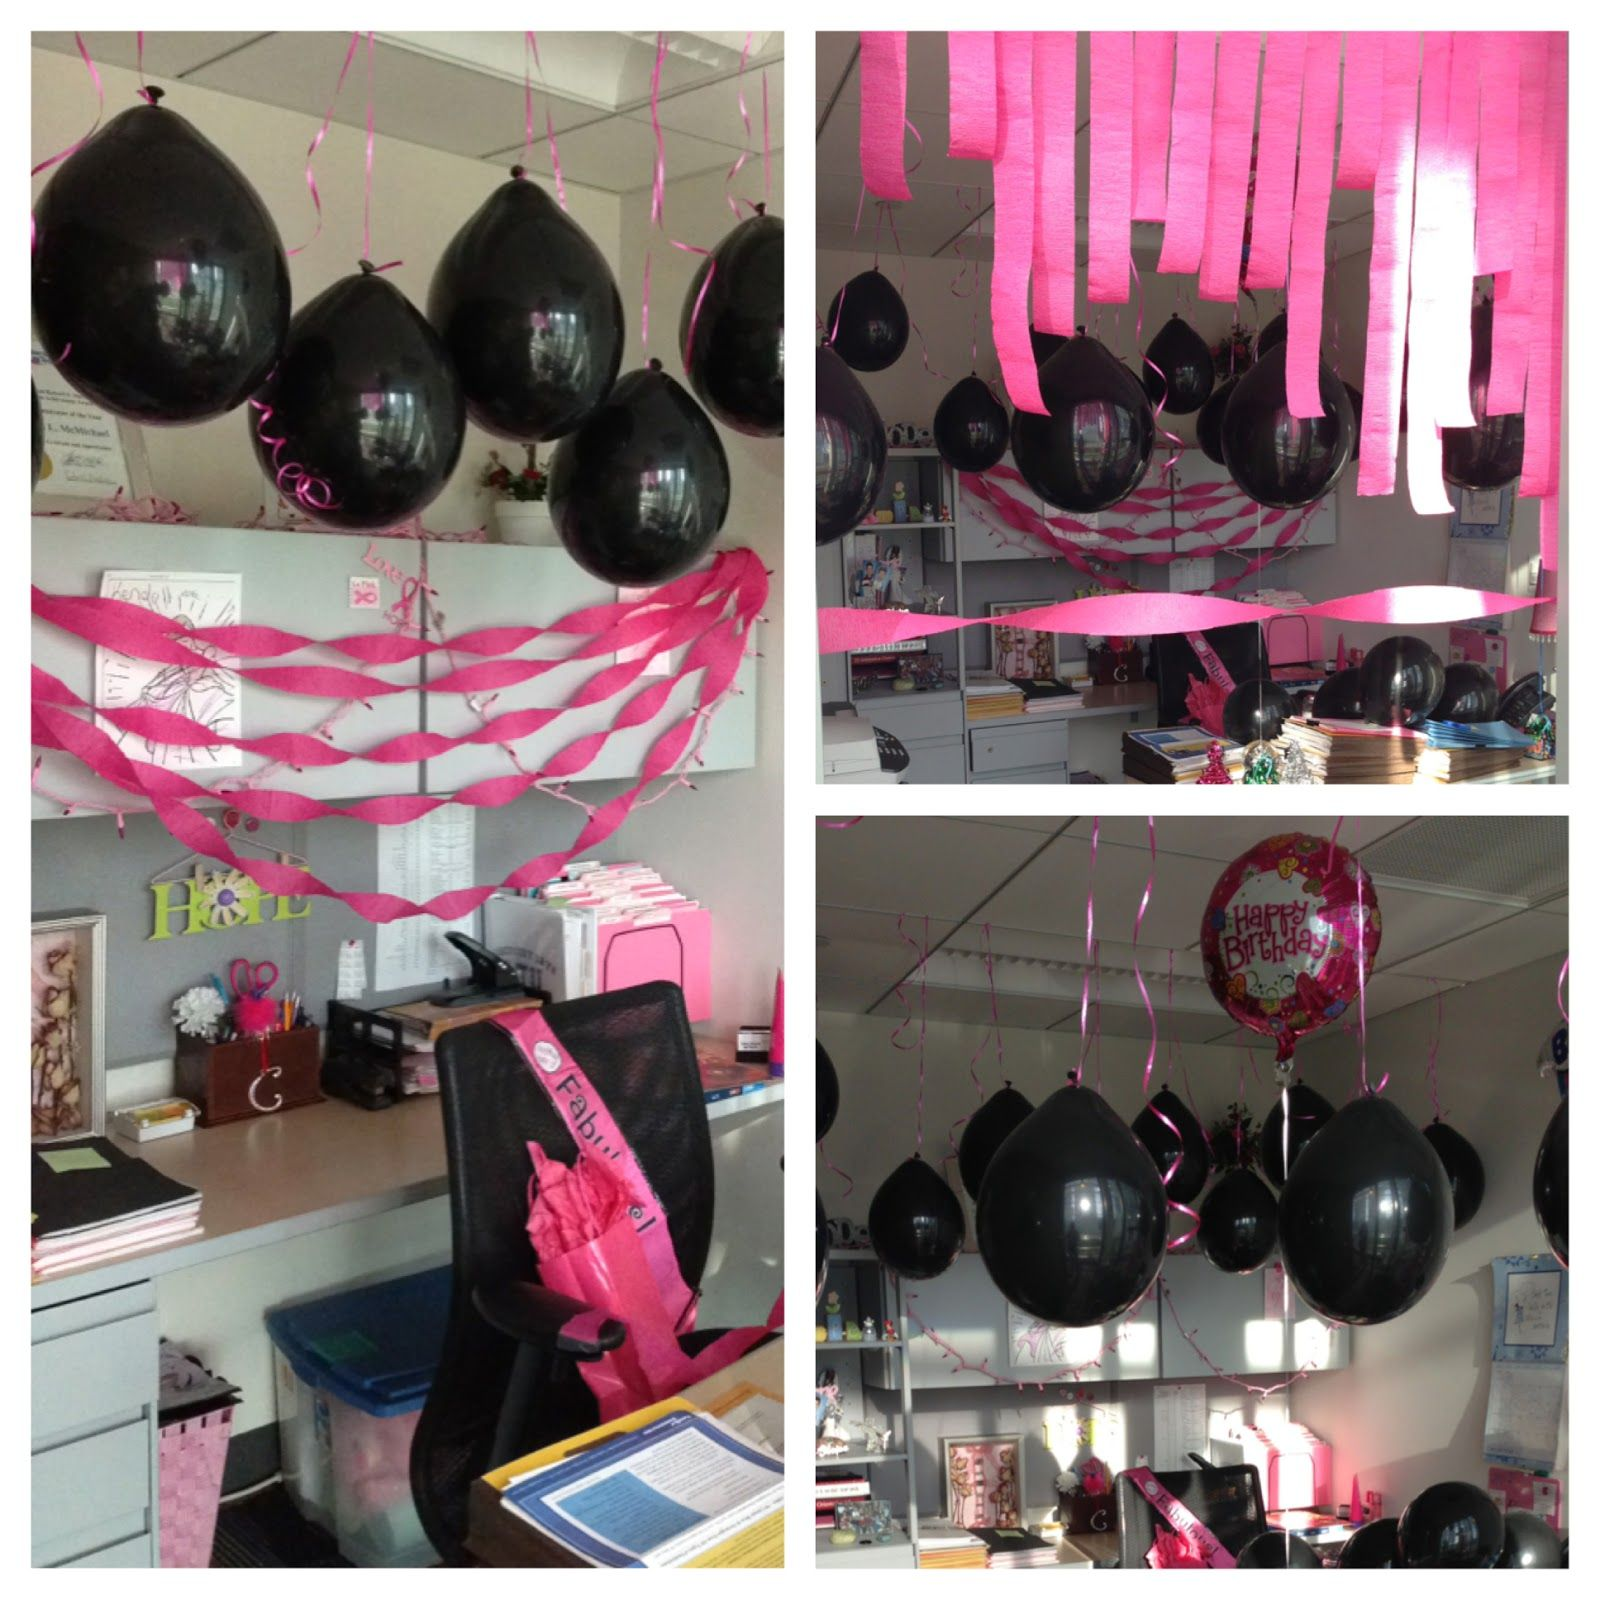 Decorating ideas pinterest joy studio design - Office Birthday Ideas For Coworker Last Friday That I Was Spending The Day Decorating My